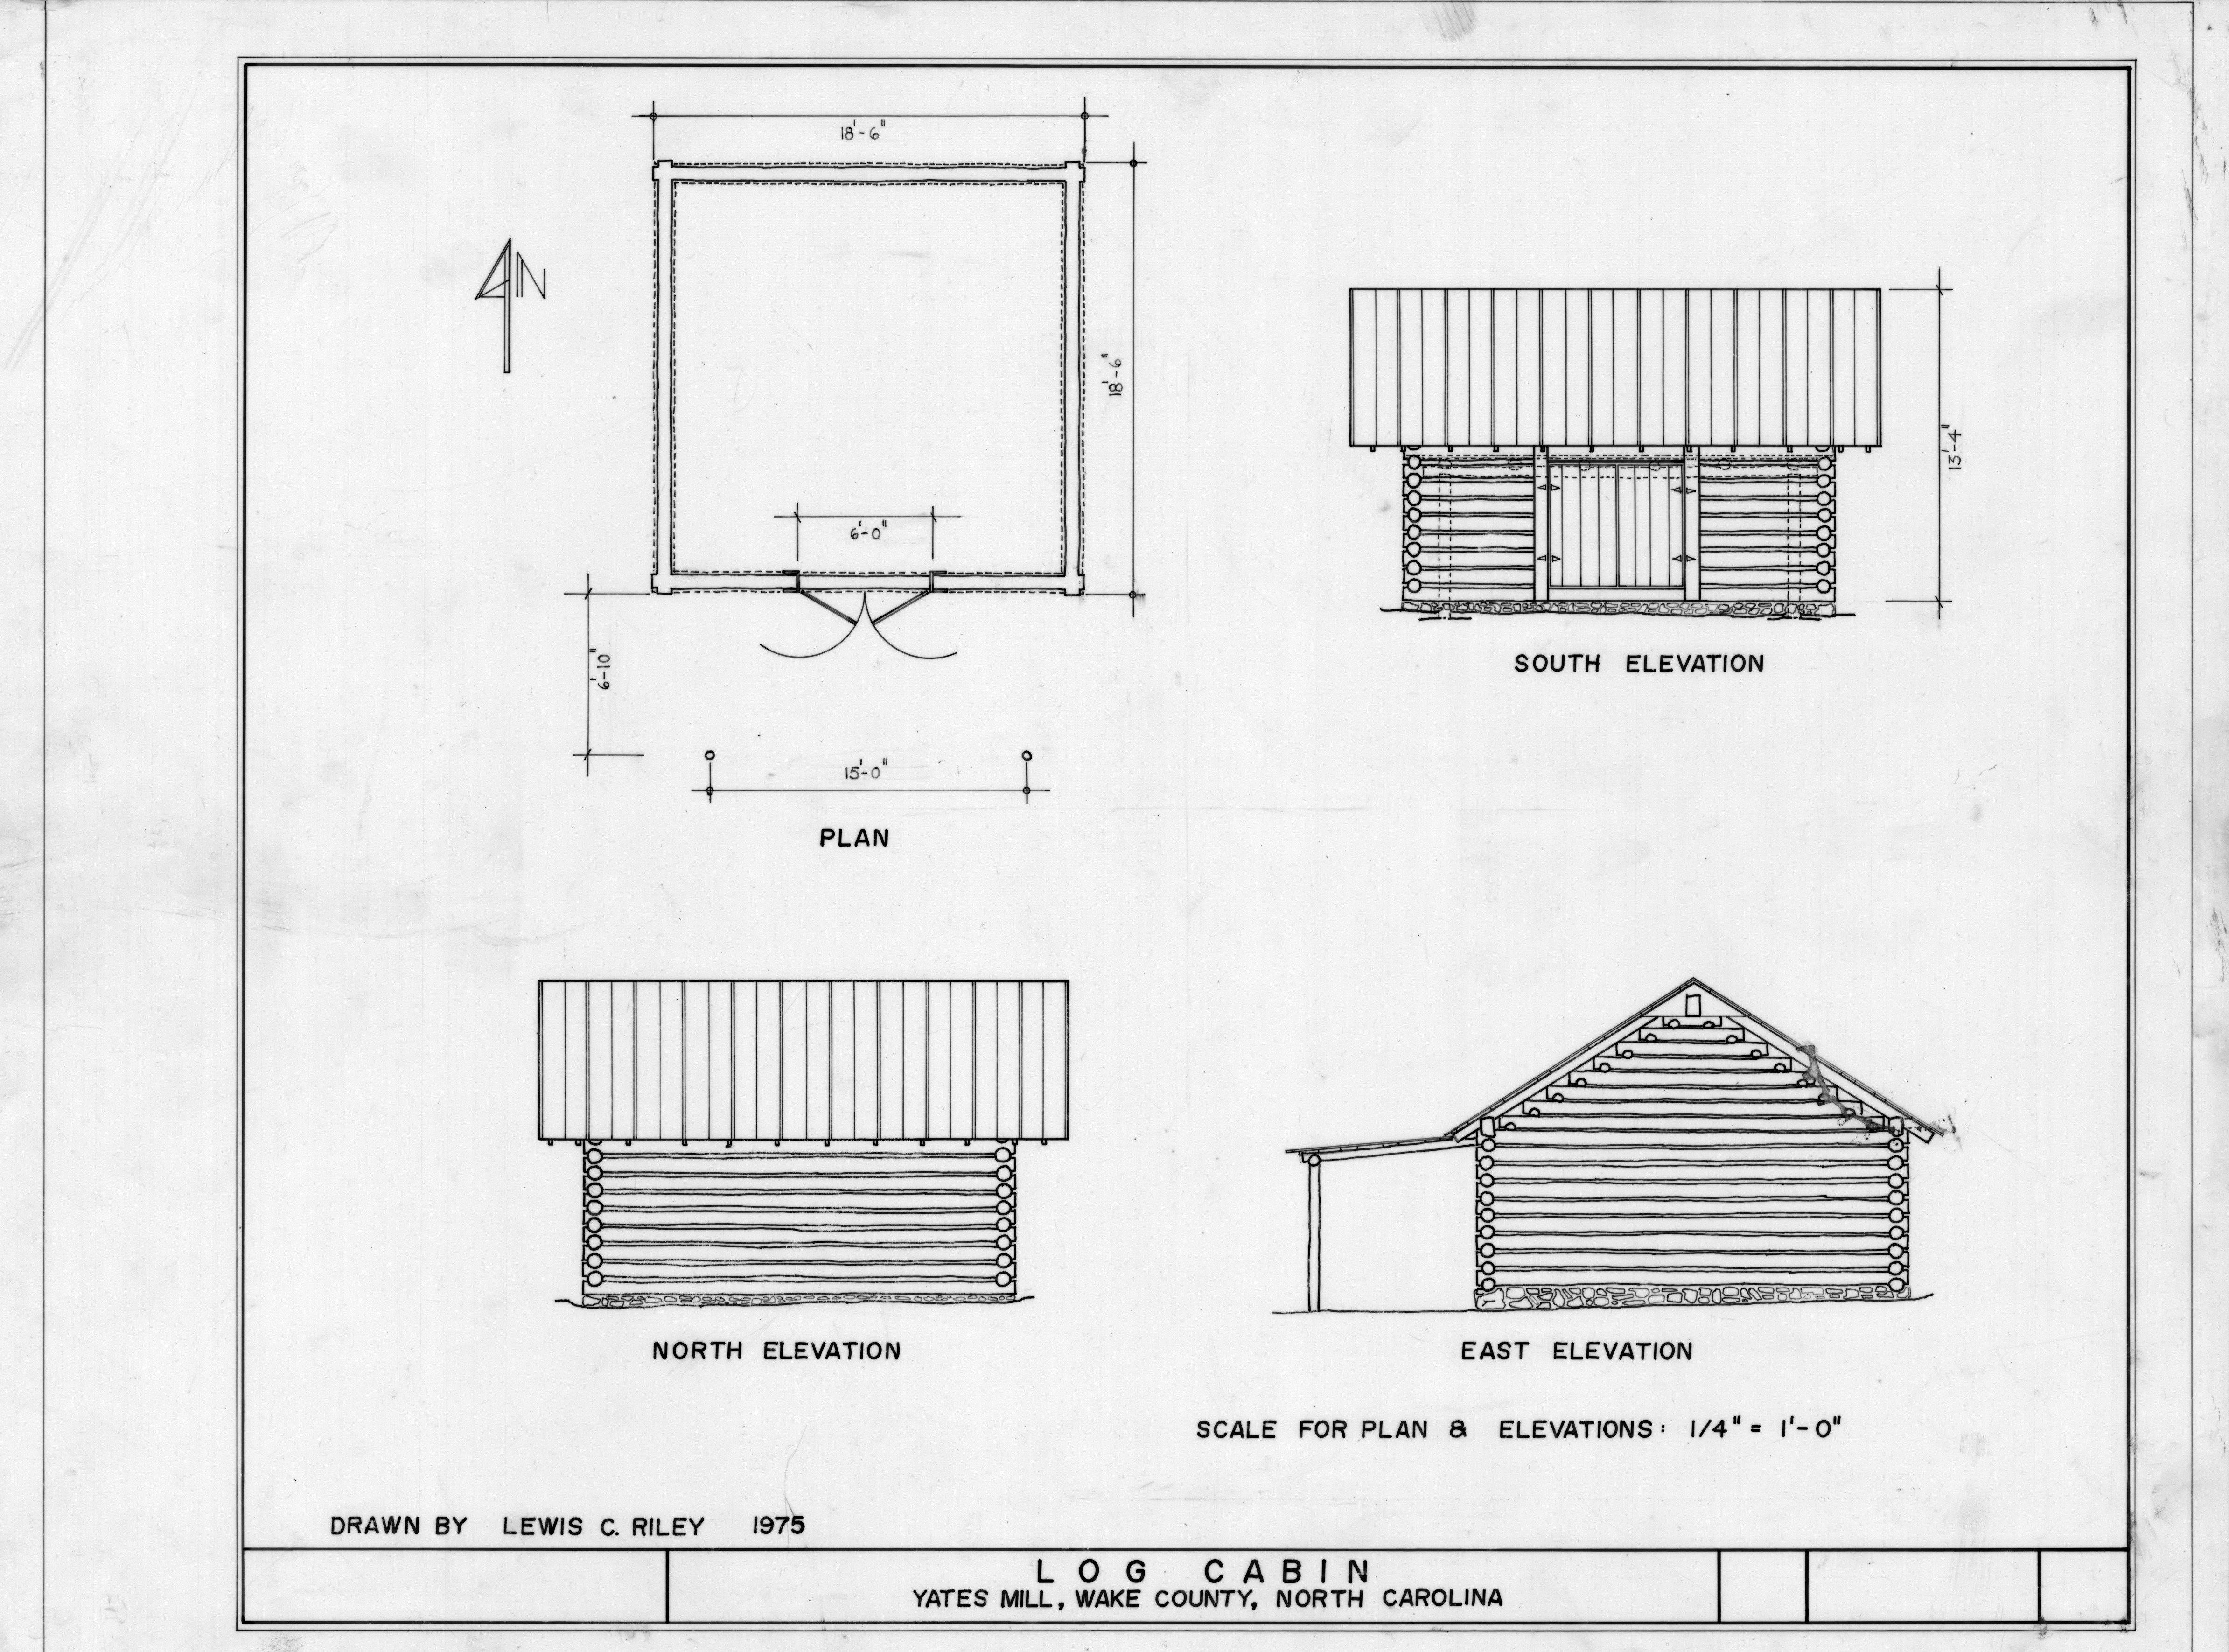 Elevation Plan Scale : Floor plan and elevations log cabin yates mill wake